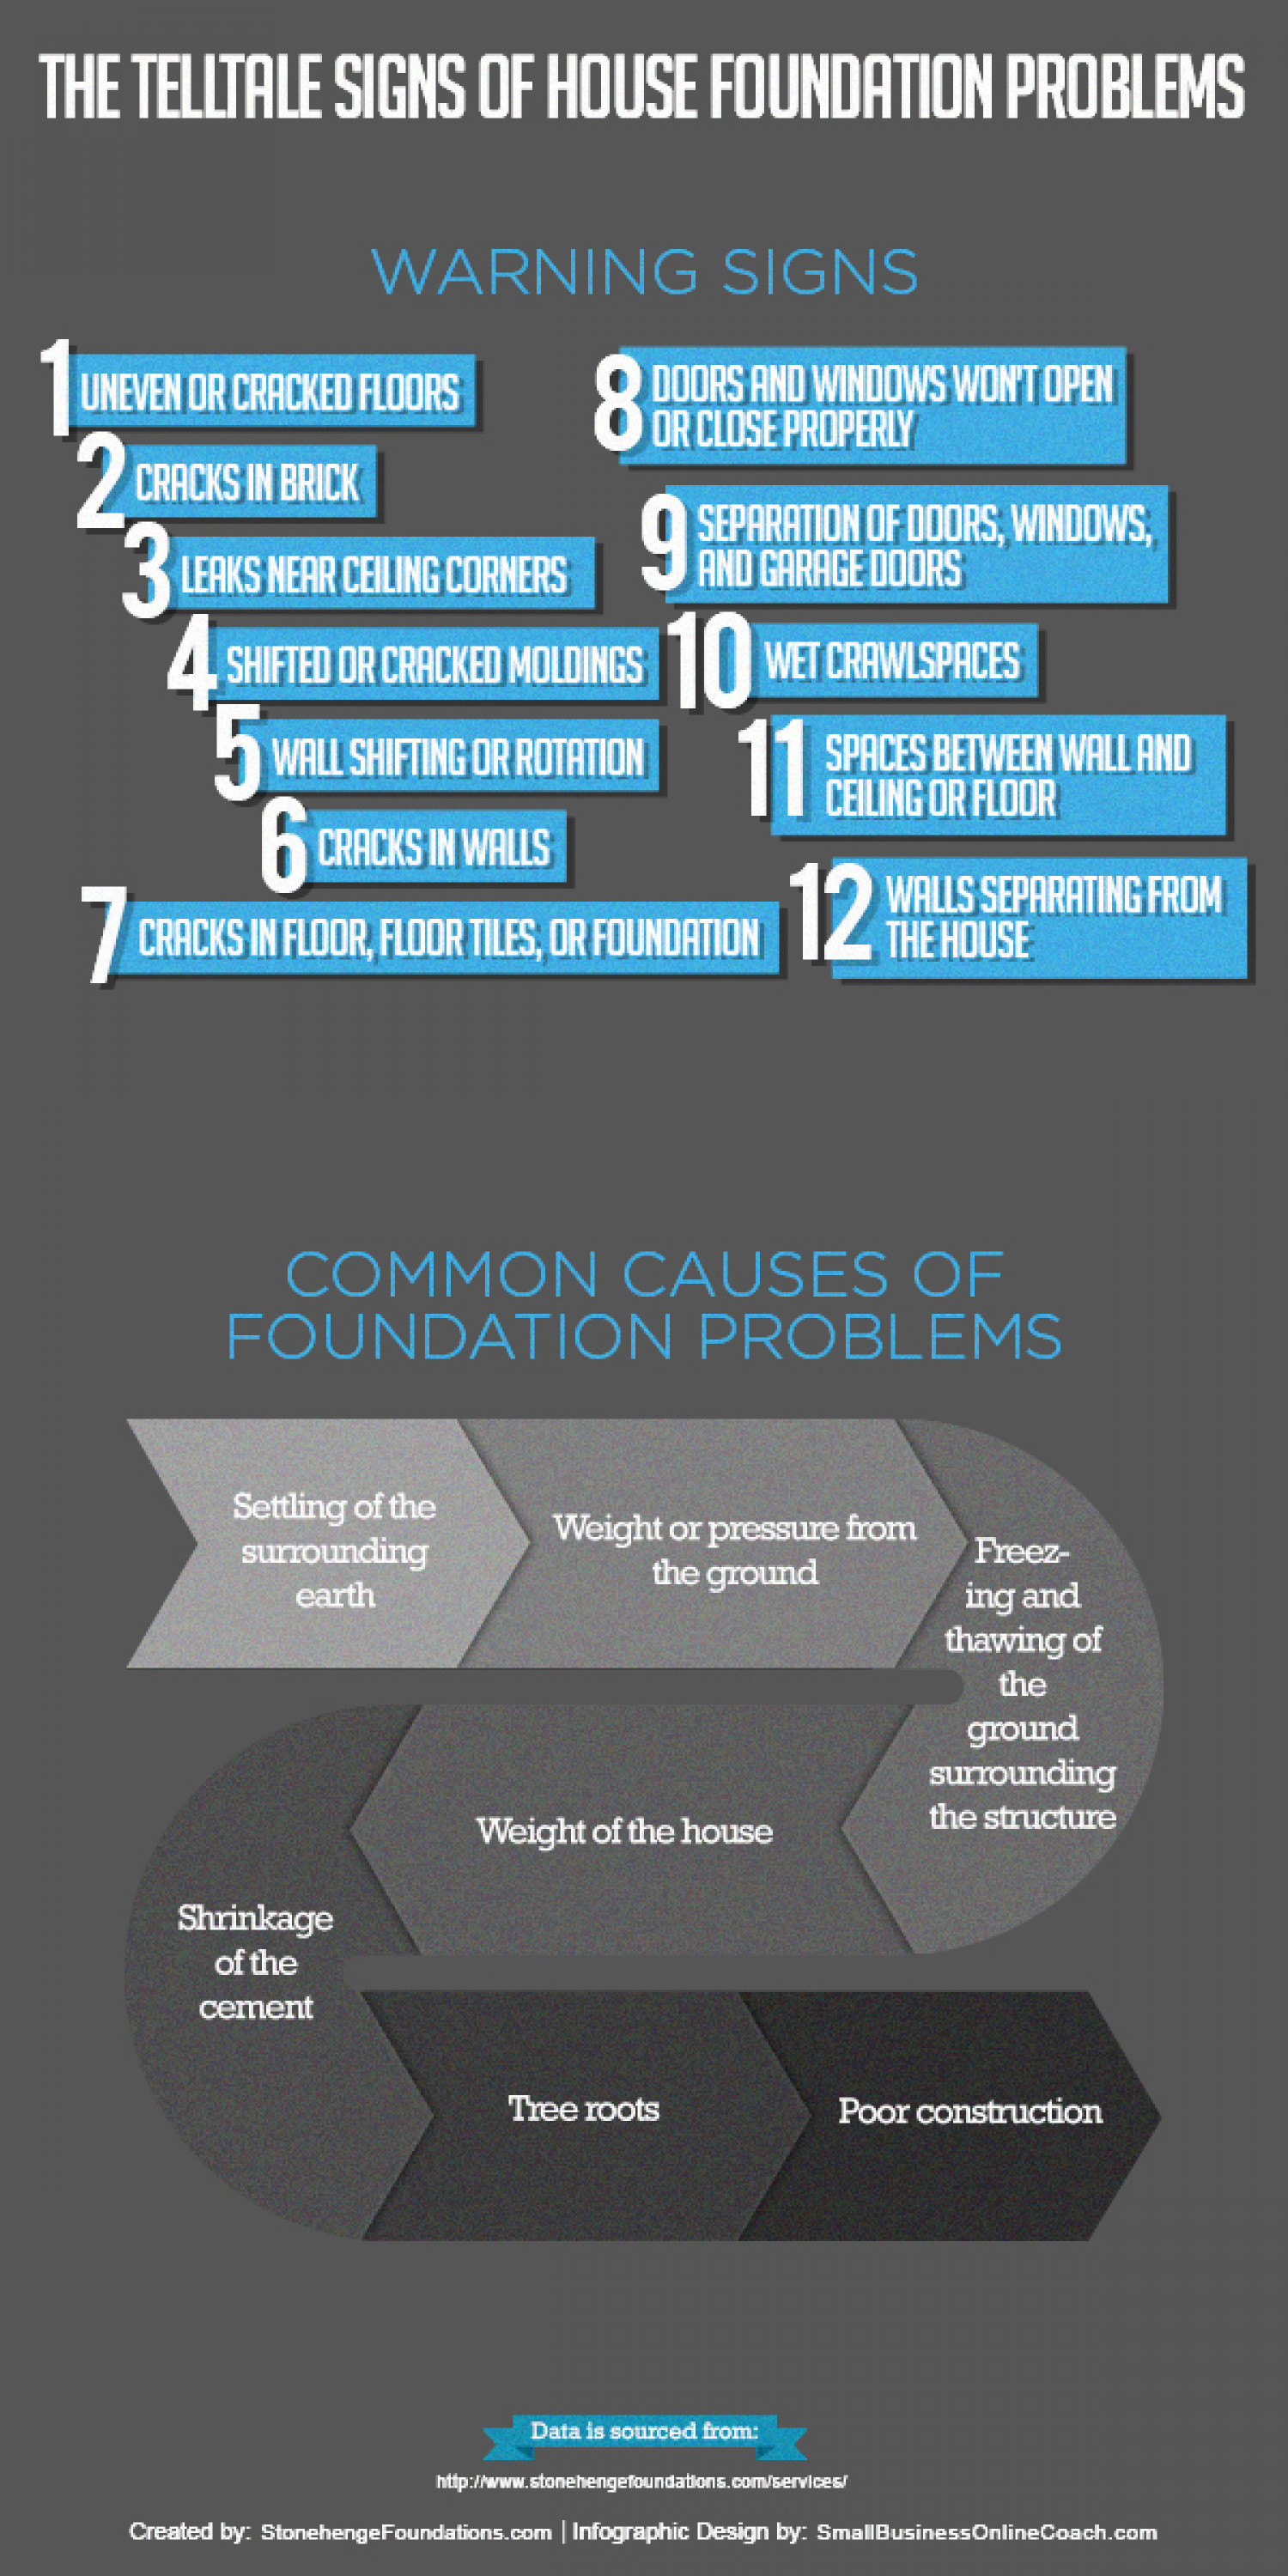 The Telltale Signs of House Foundation Problems Infographic